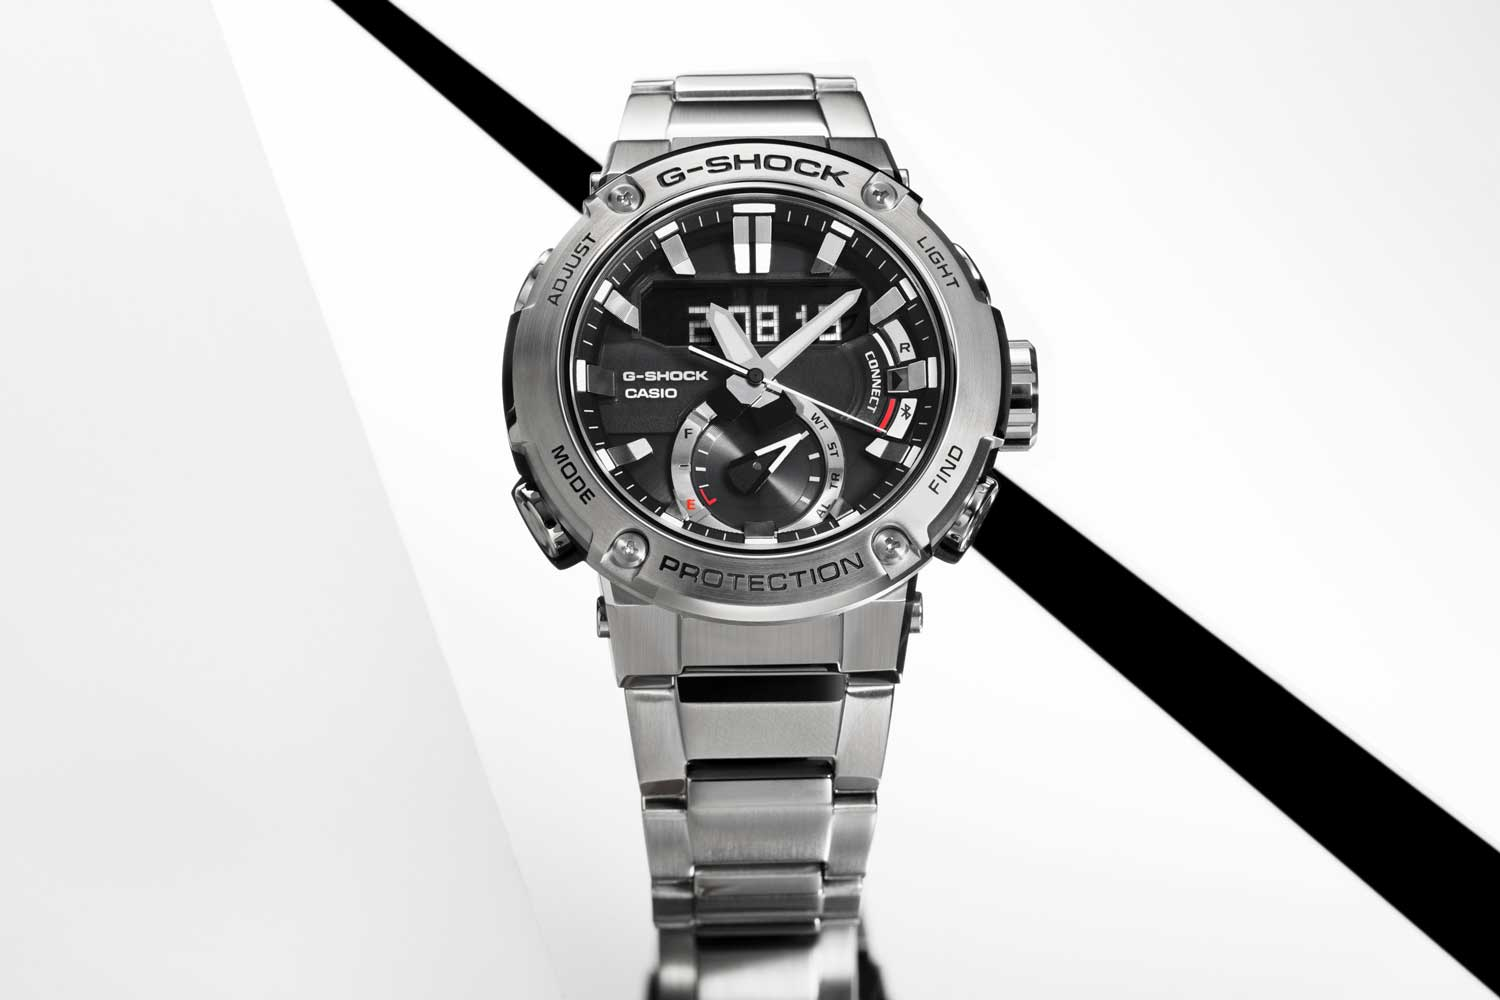 Casio G-Steel Carbon Core Guard GST-B200D-1A (Image © Revolution)